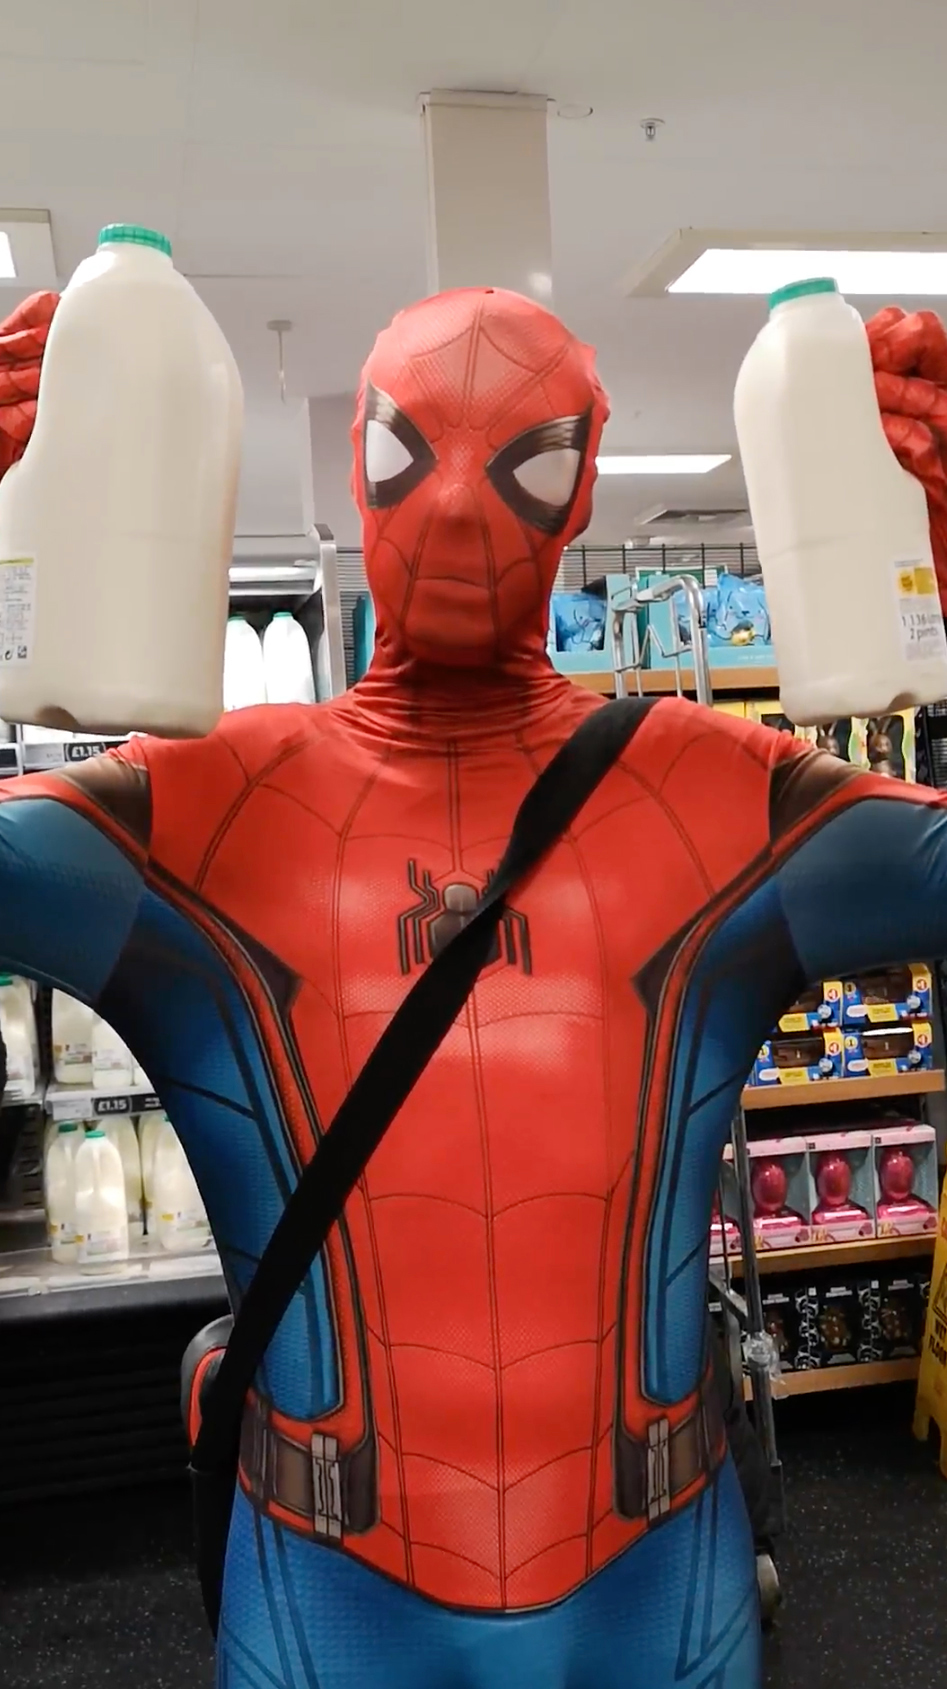 Man who dresses as Spider-Man does shopping for self-isolating people